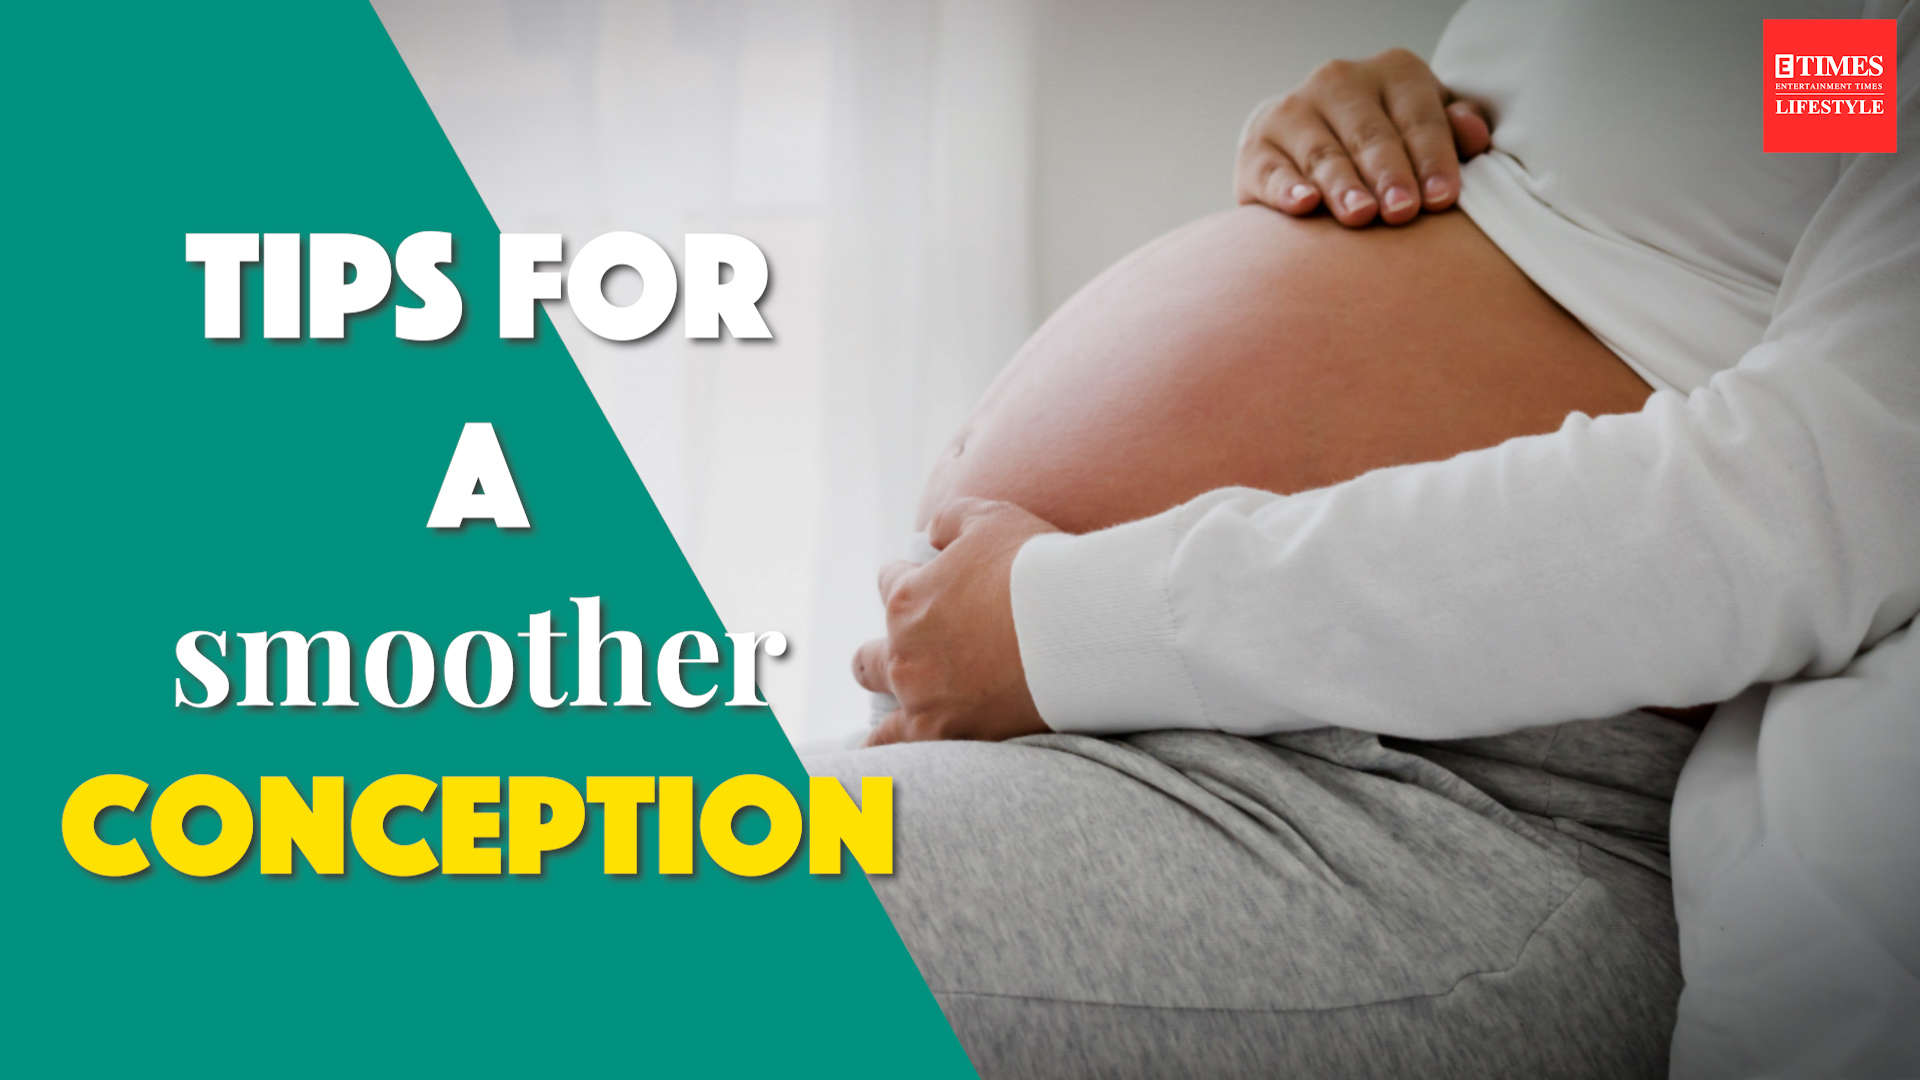 tips-for-a-smoother-conception